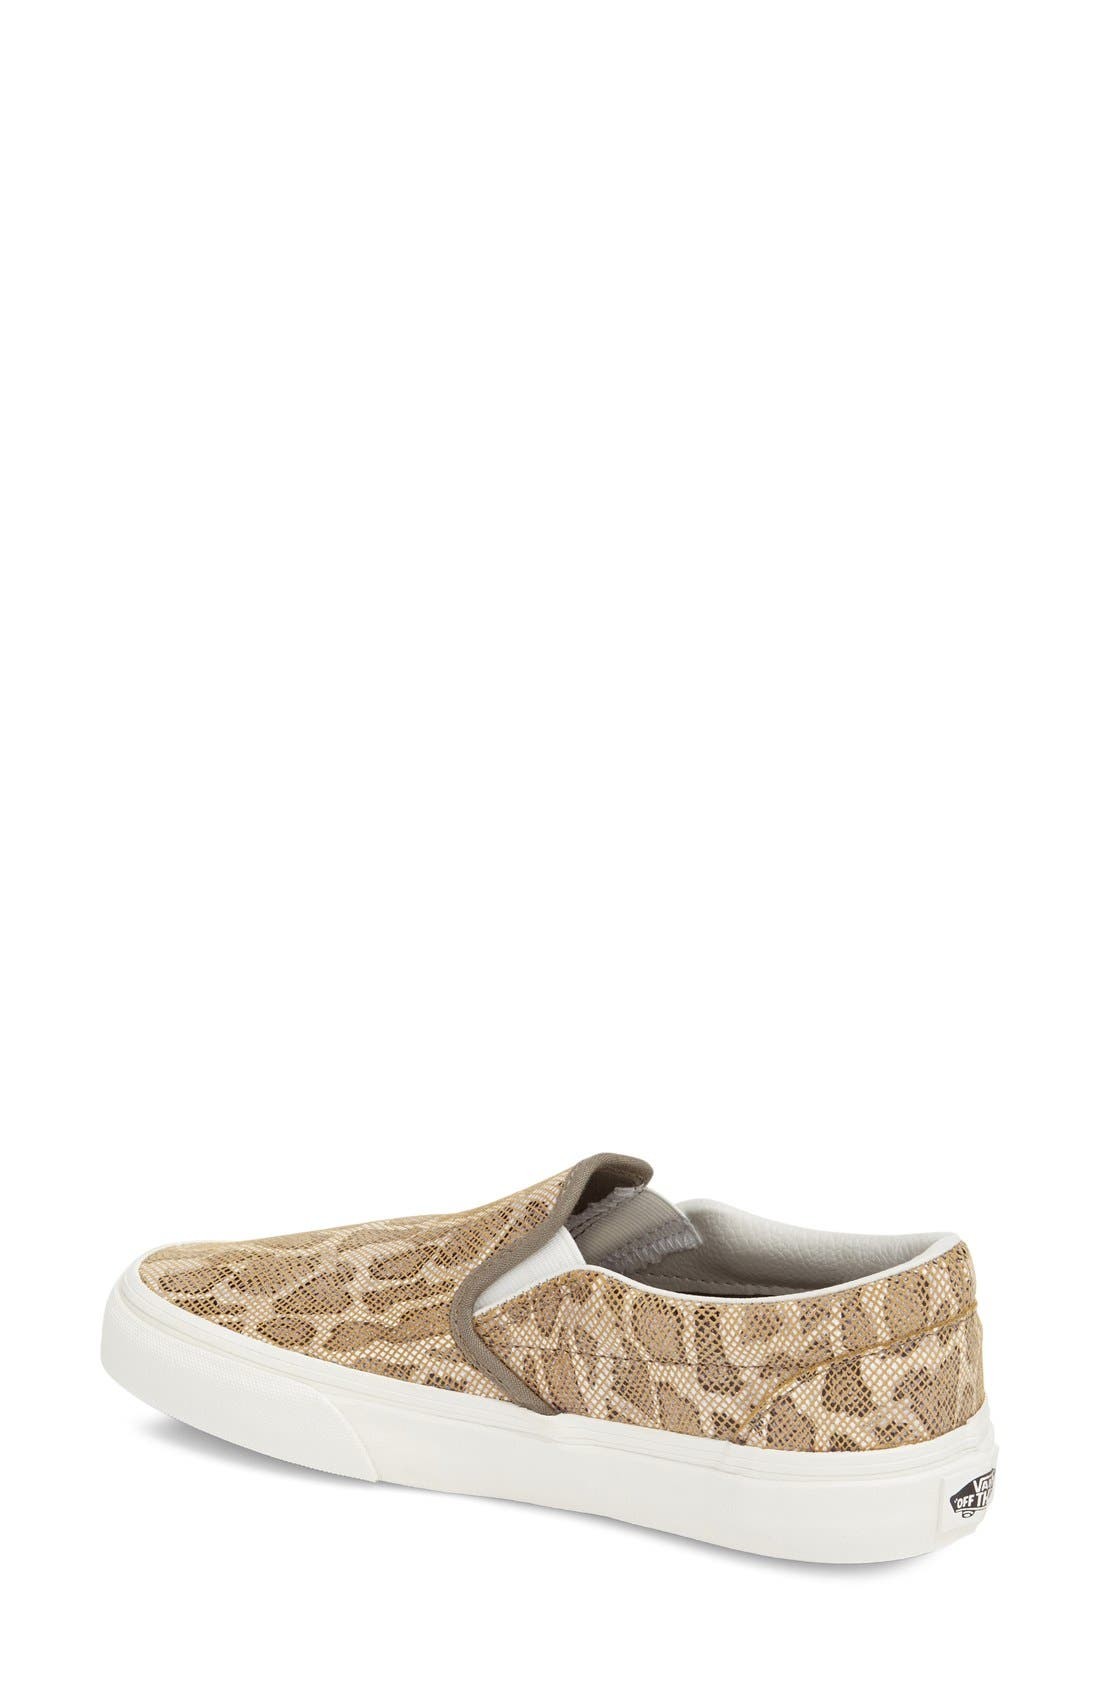 Alternate Image 2  - Vans 'Classic' Leopard Print Slip-On (Women)